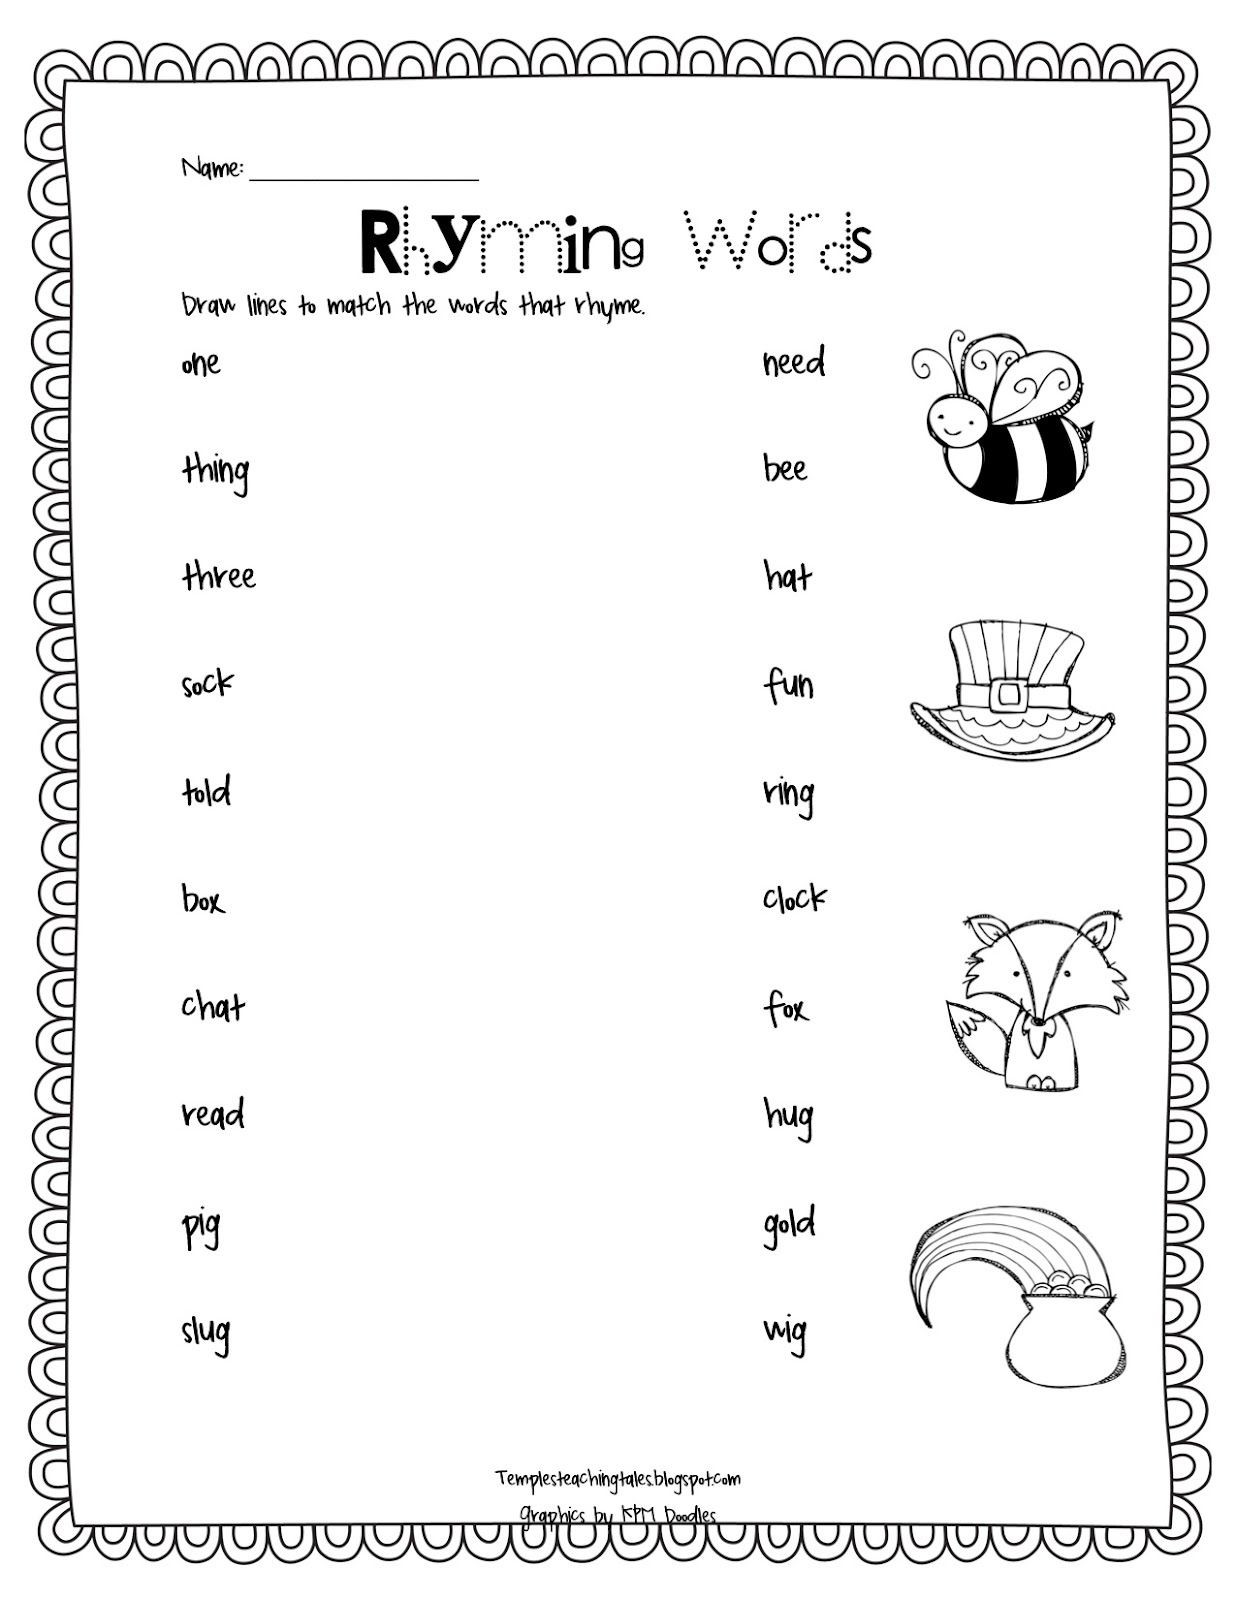 Rhyming Worksheets 1st Grade the End Of Another Chapter